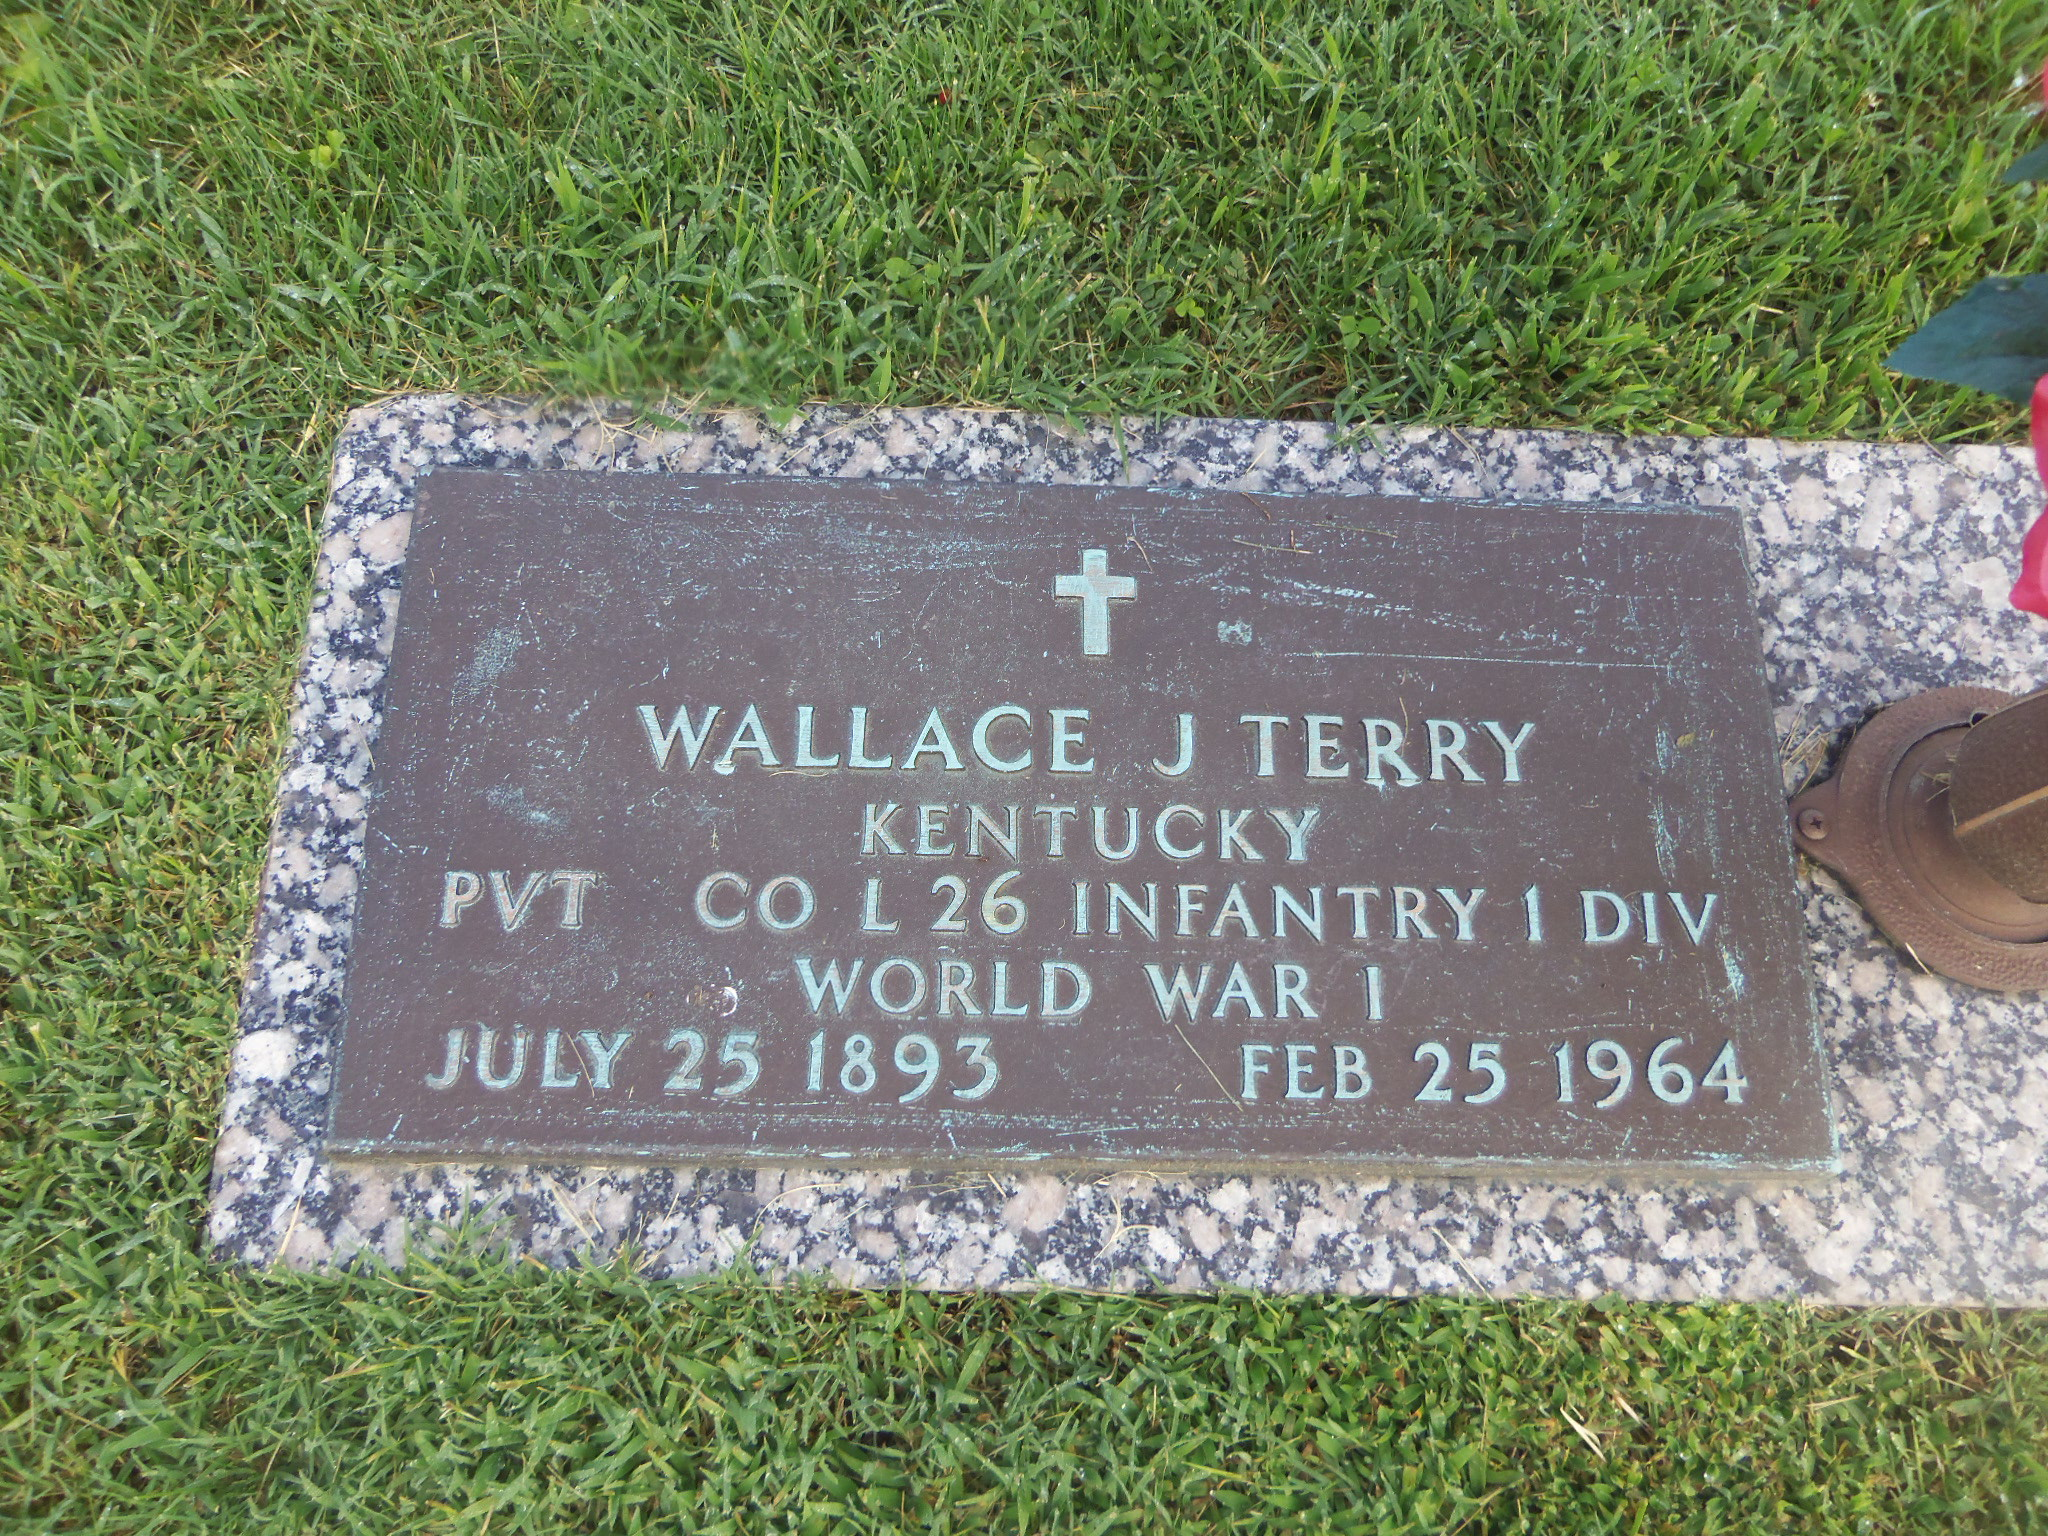 Wallace J. Terry